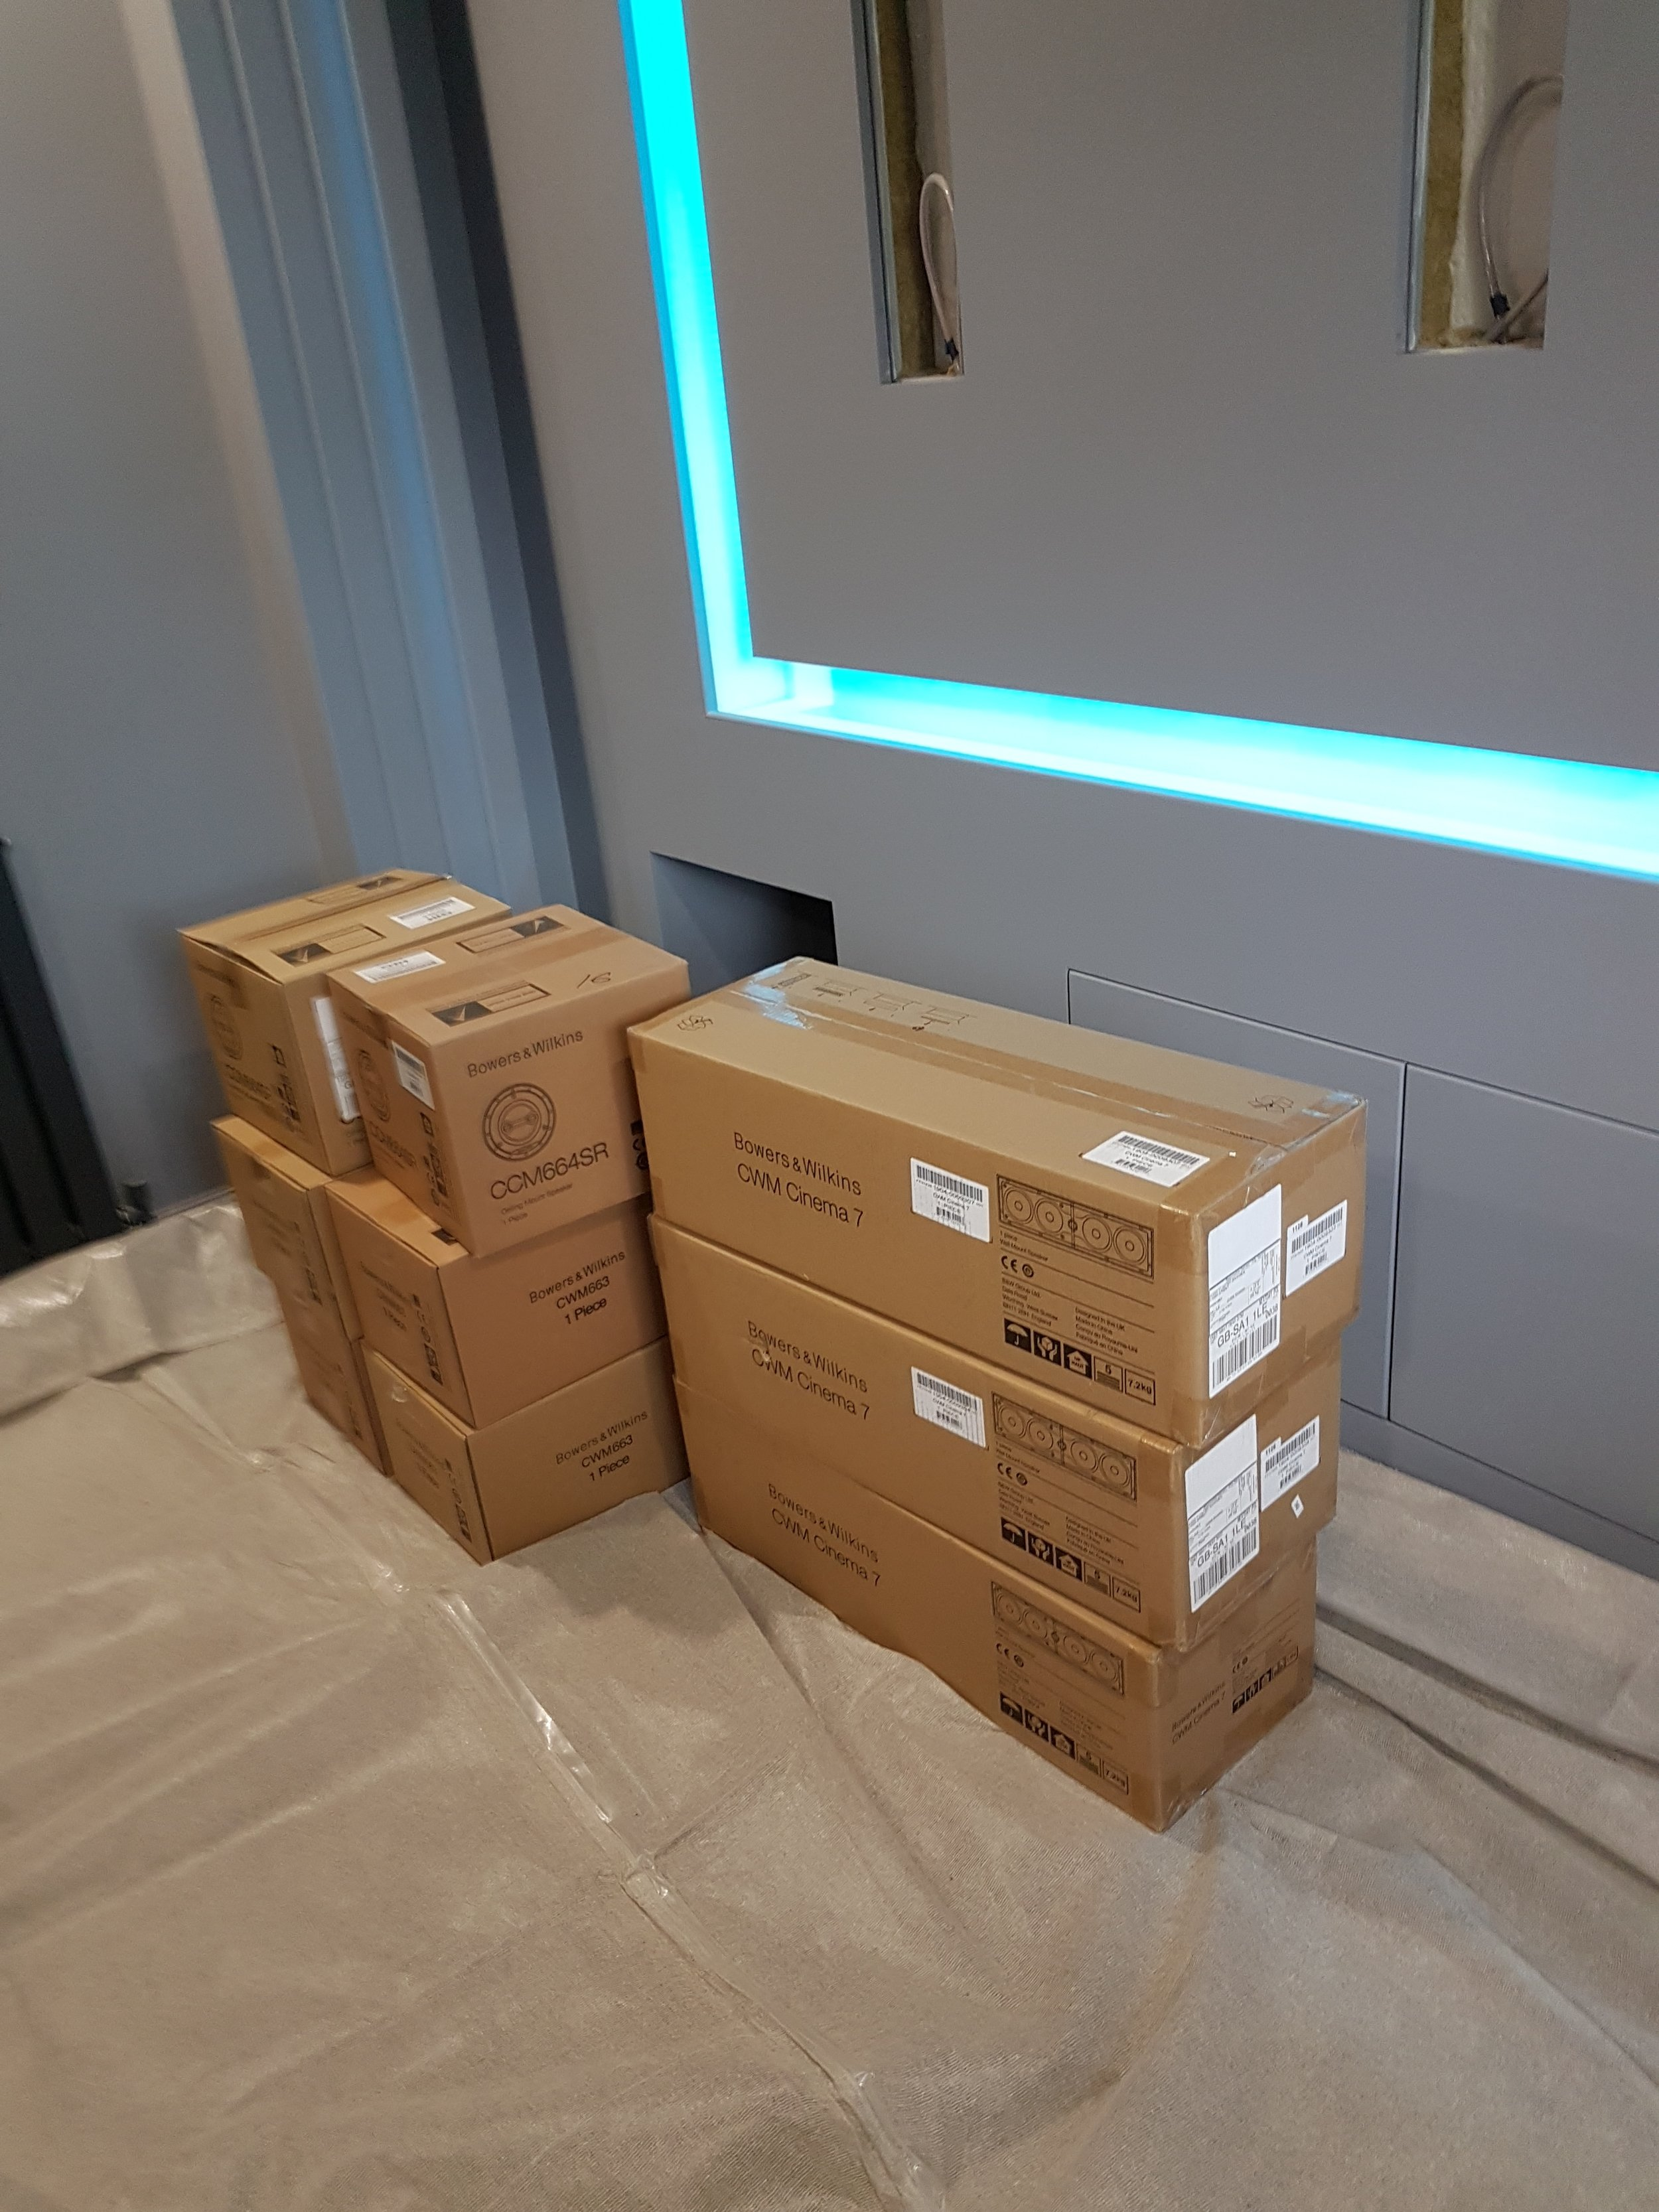 Private Home Cinema Anyone? Audio T Swansea Installs A New